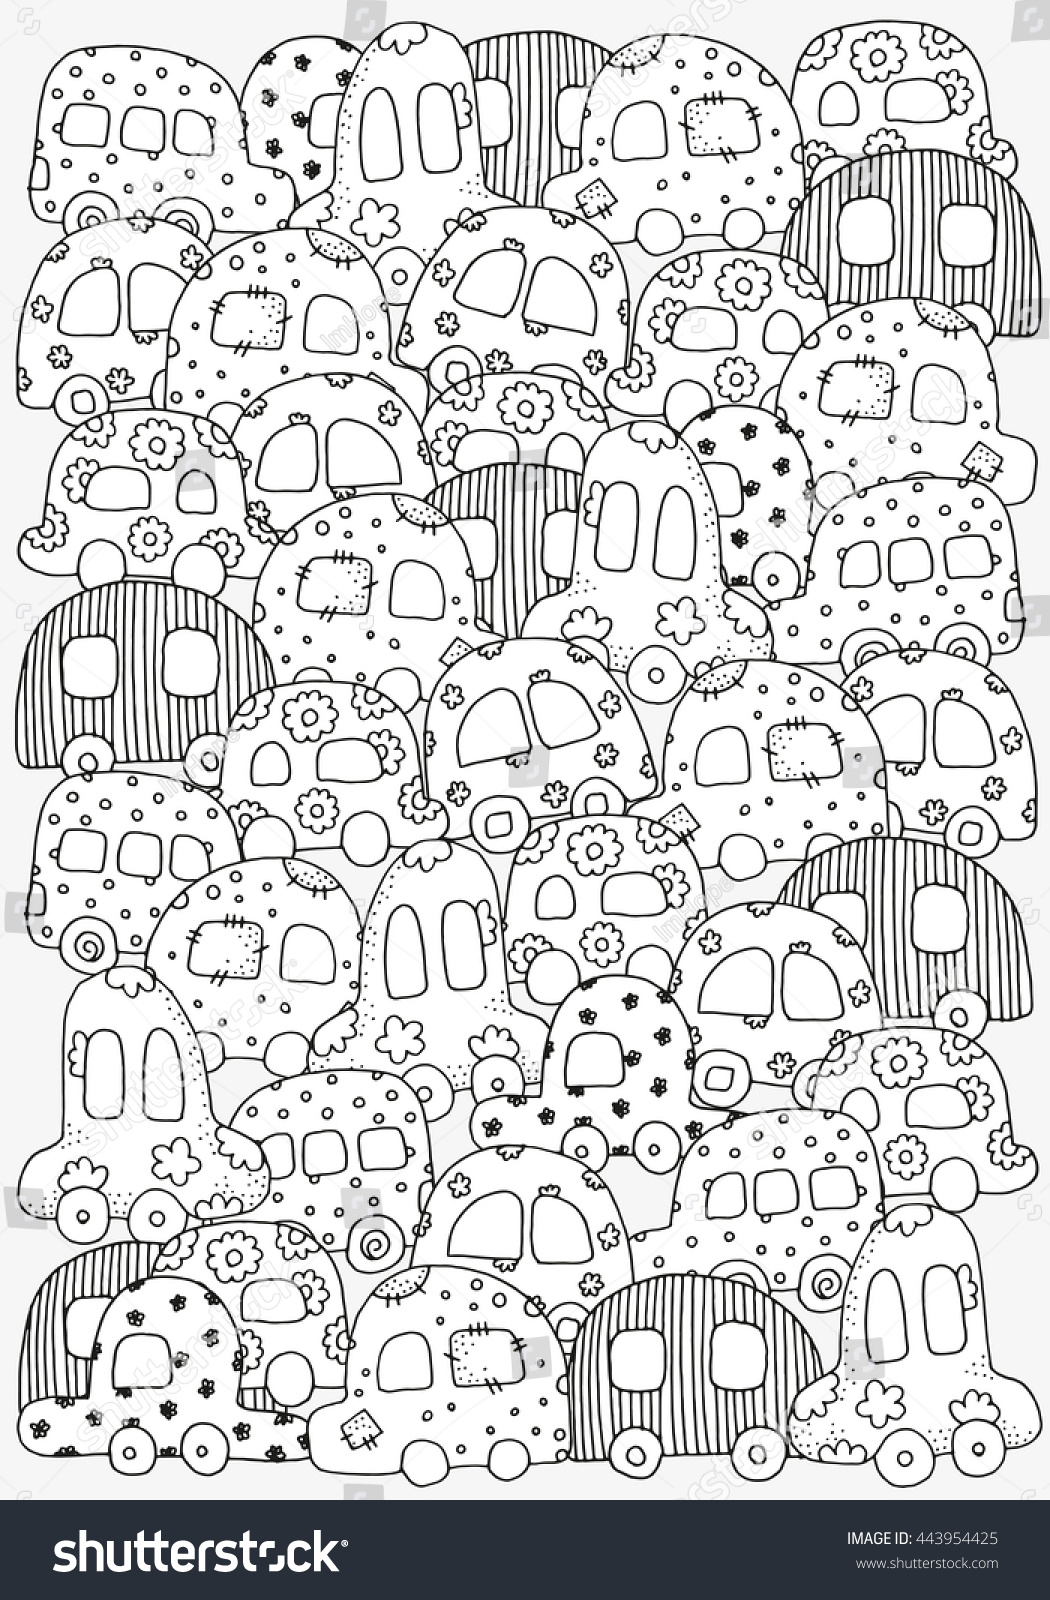 Th the magical city colouring in book - Pattern For Coloring Book With Doodle Style Hand Drawn Kids Cars A4